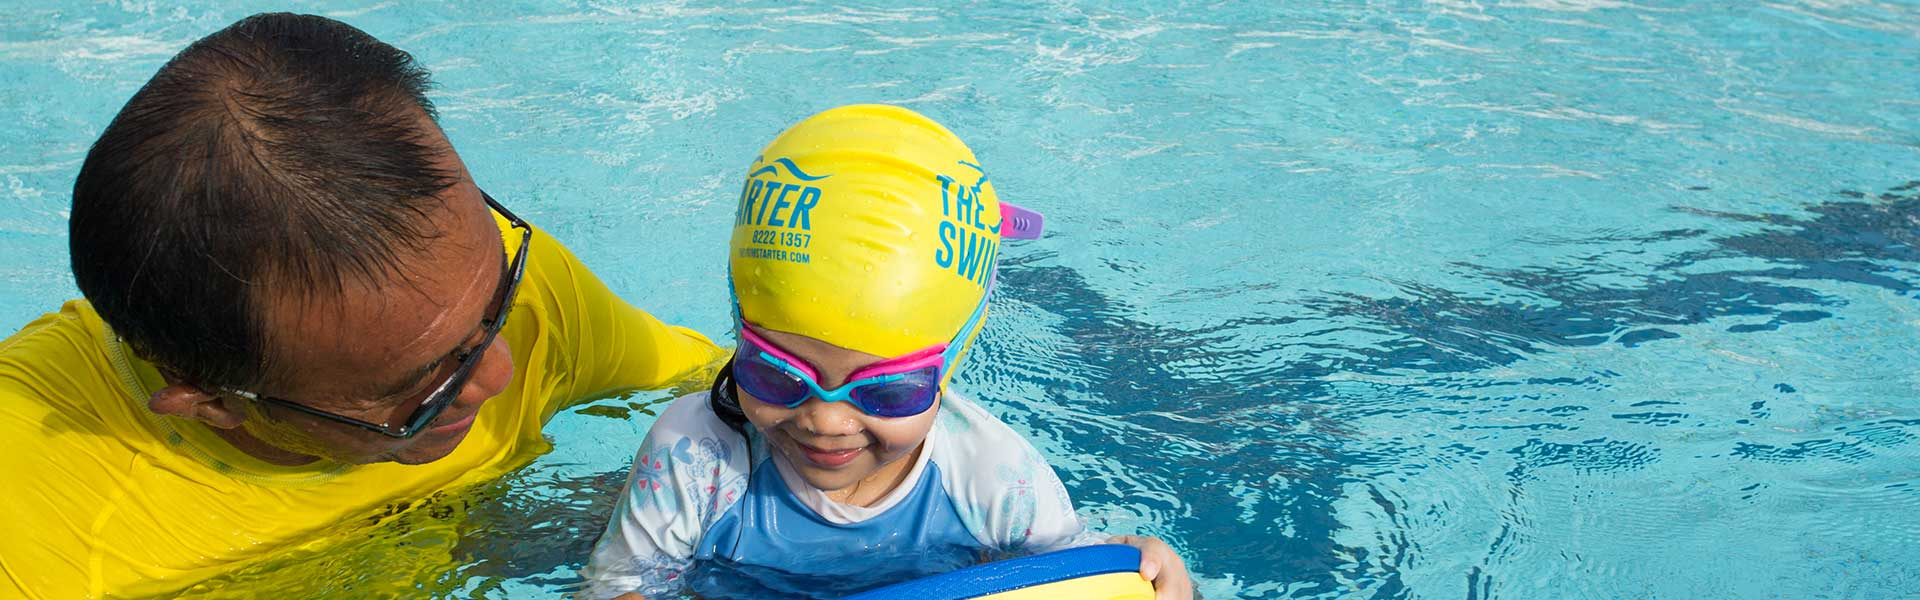 Young child Swimming in deep pool with coach and board balancing